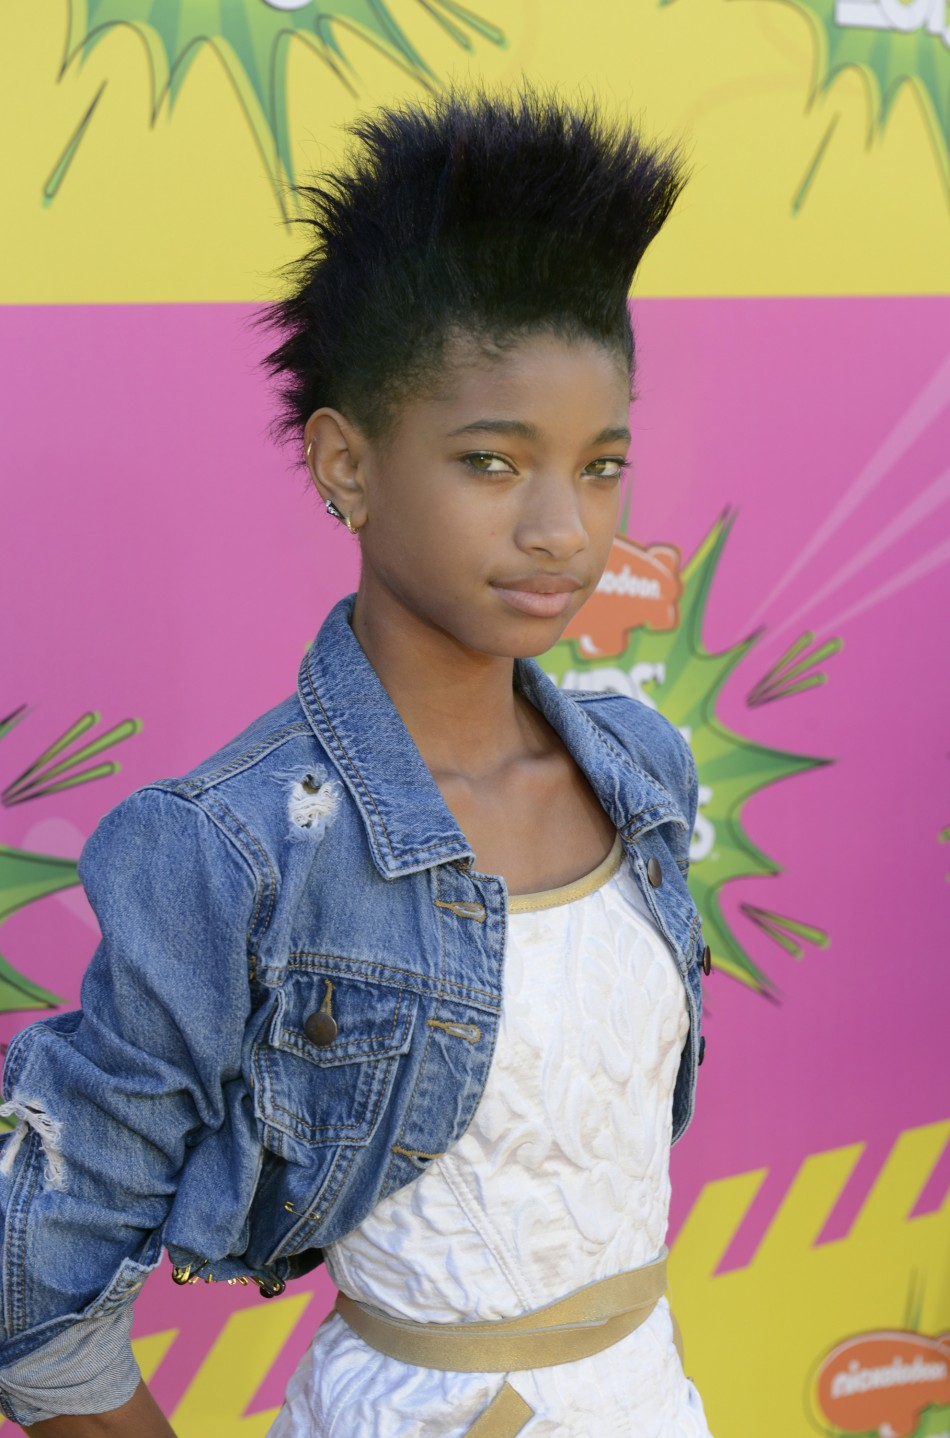 Willow Smith attends the 2013 Kids' Choice Awards